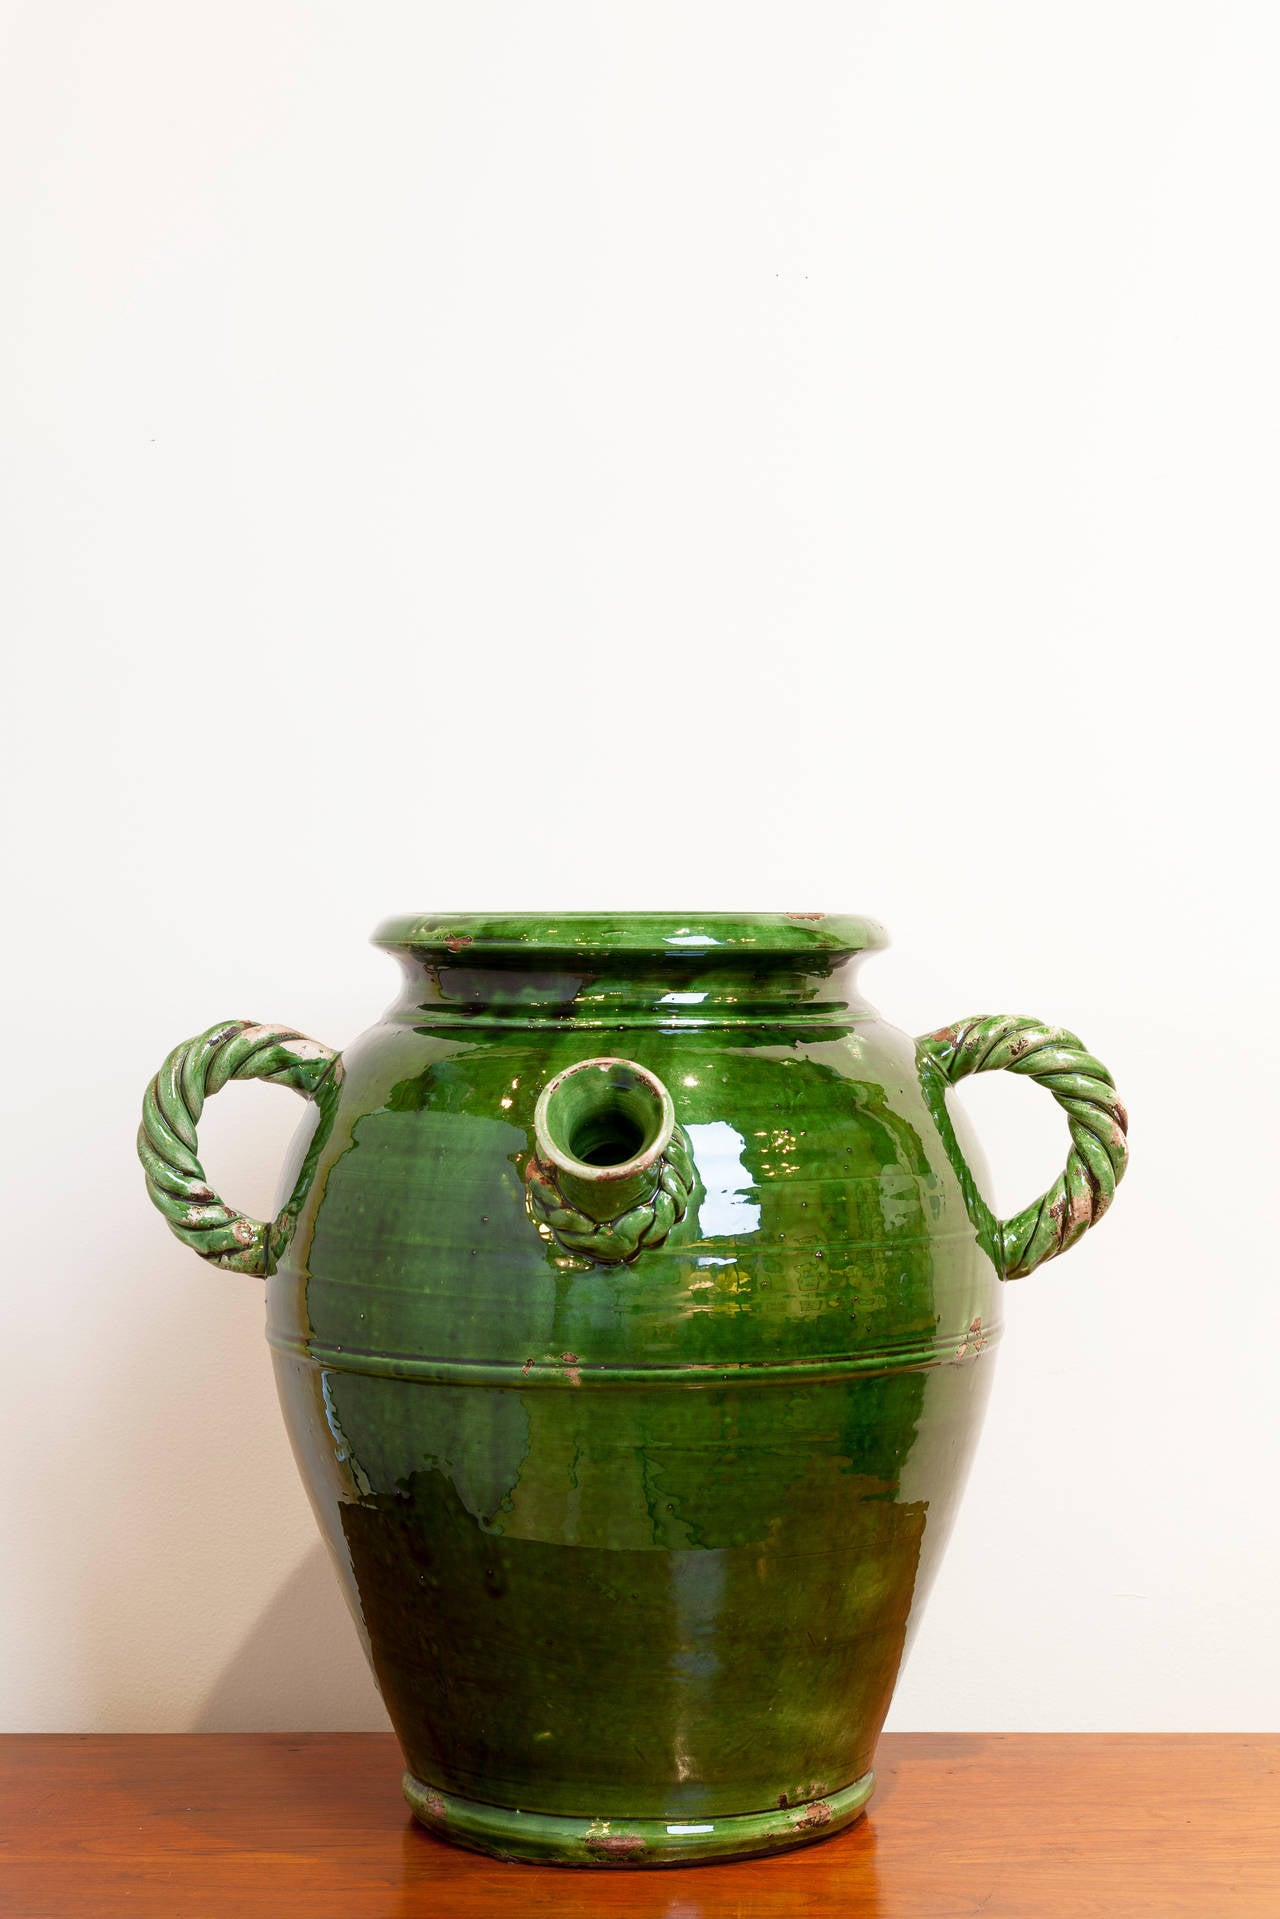 Large French Provençal storage jar, late 19th century. Beautiful deep green glaze with rope-twist handles and detail on spout.